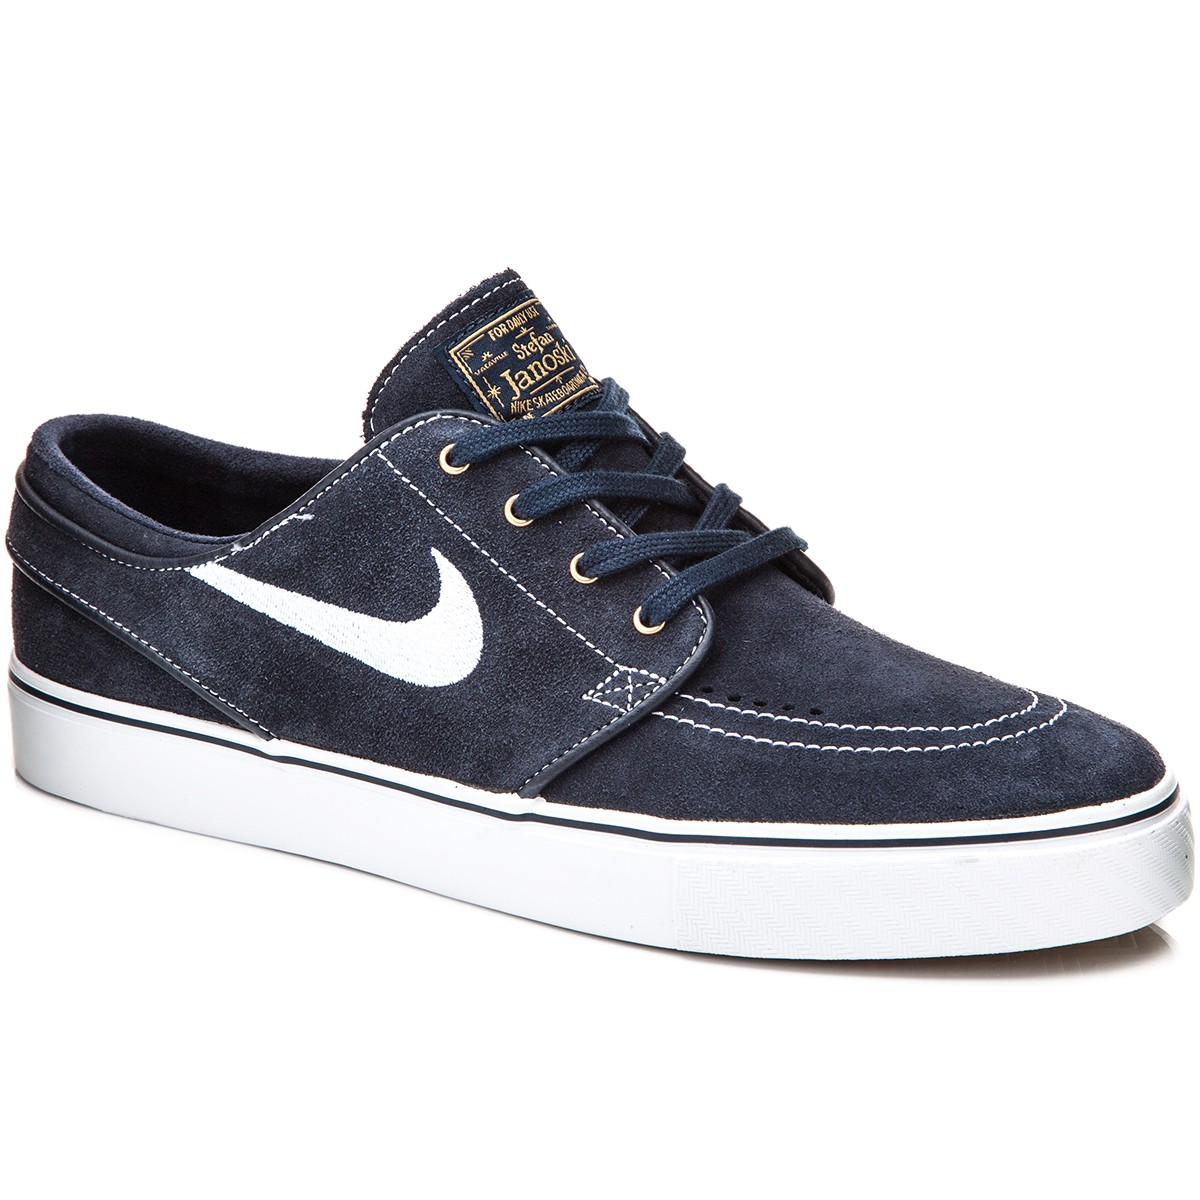 nike zoom stefan janoski shoes. Black Bedroom Furniture Sets. Home Design Ideas